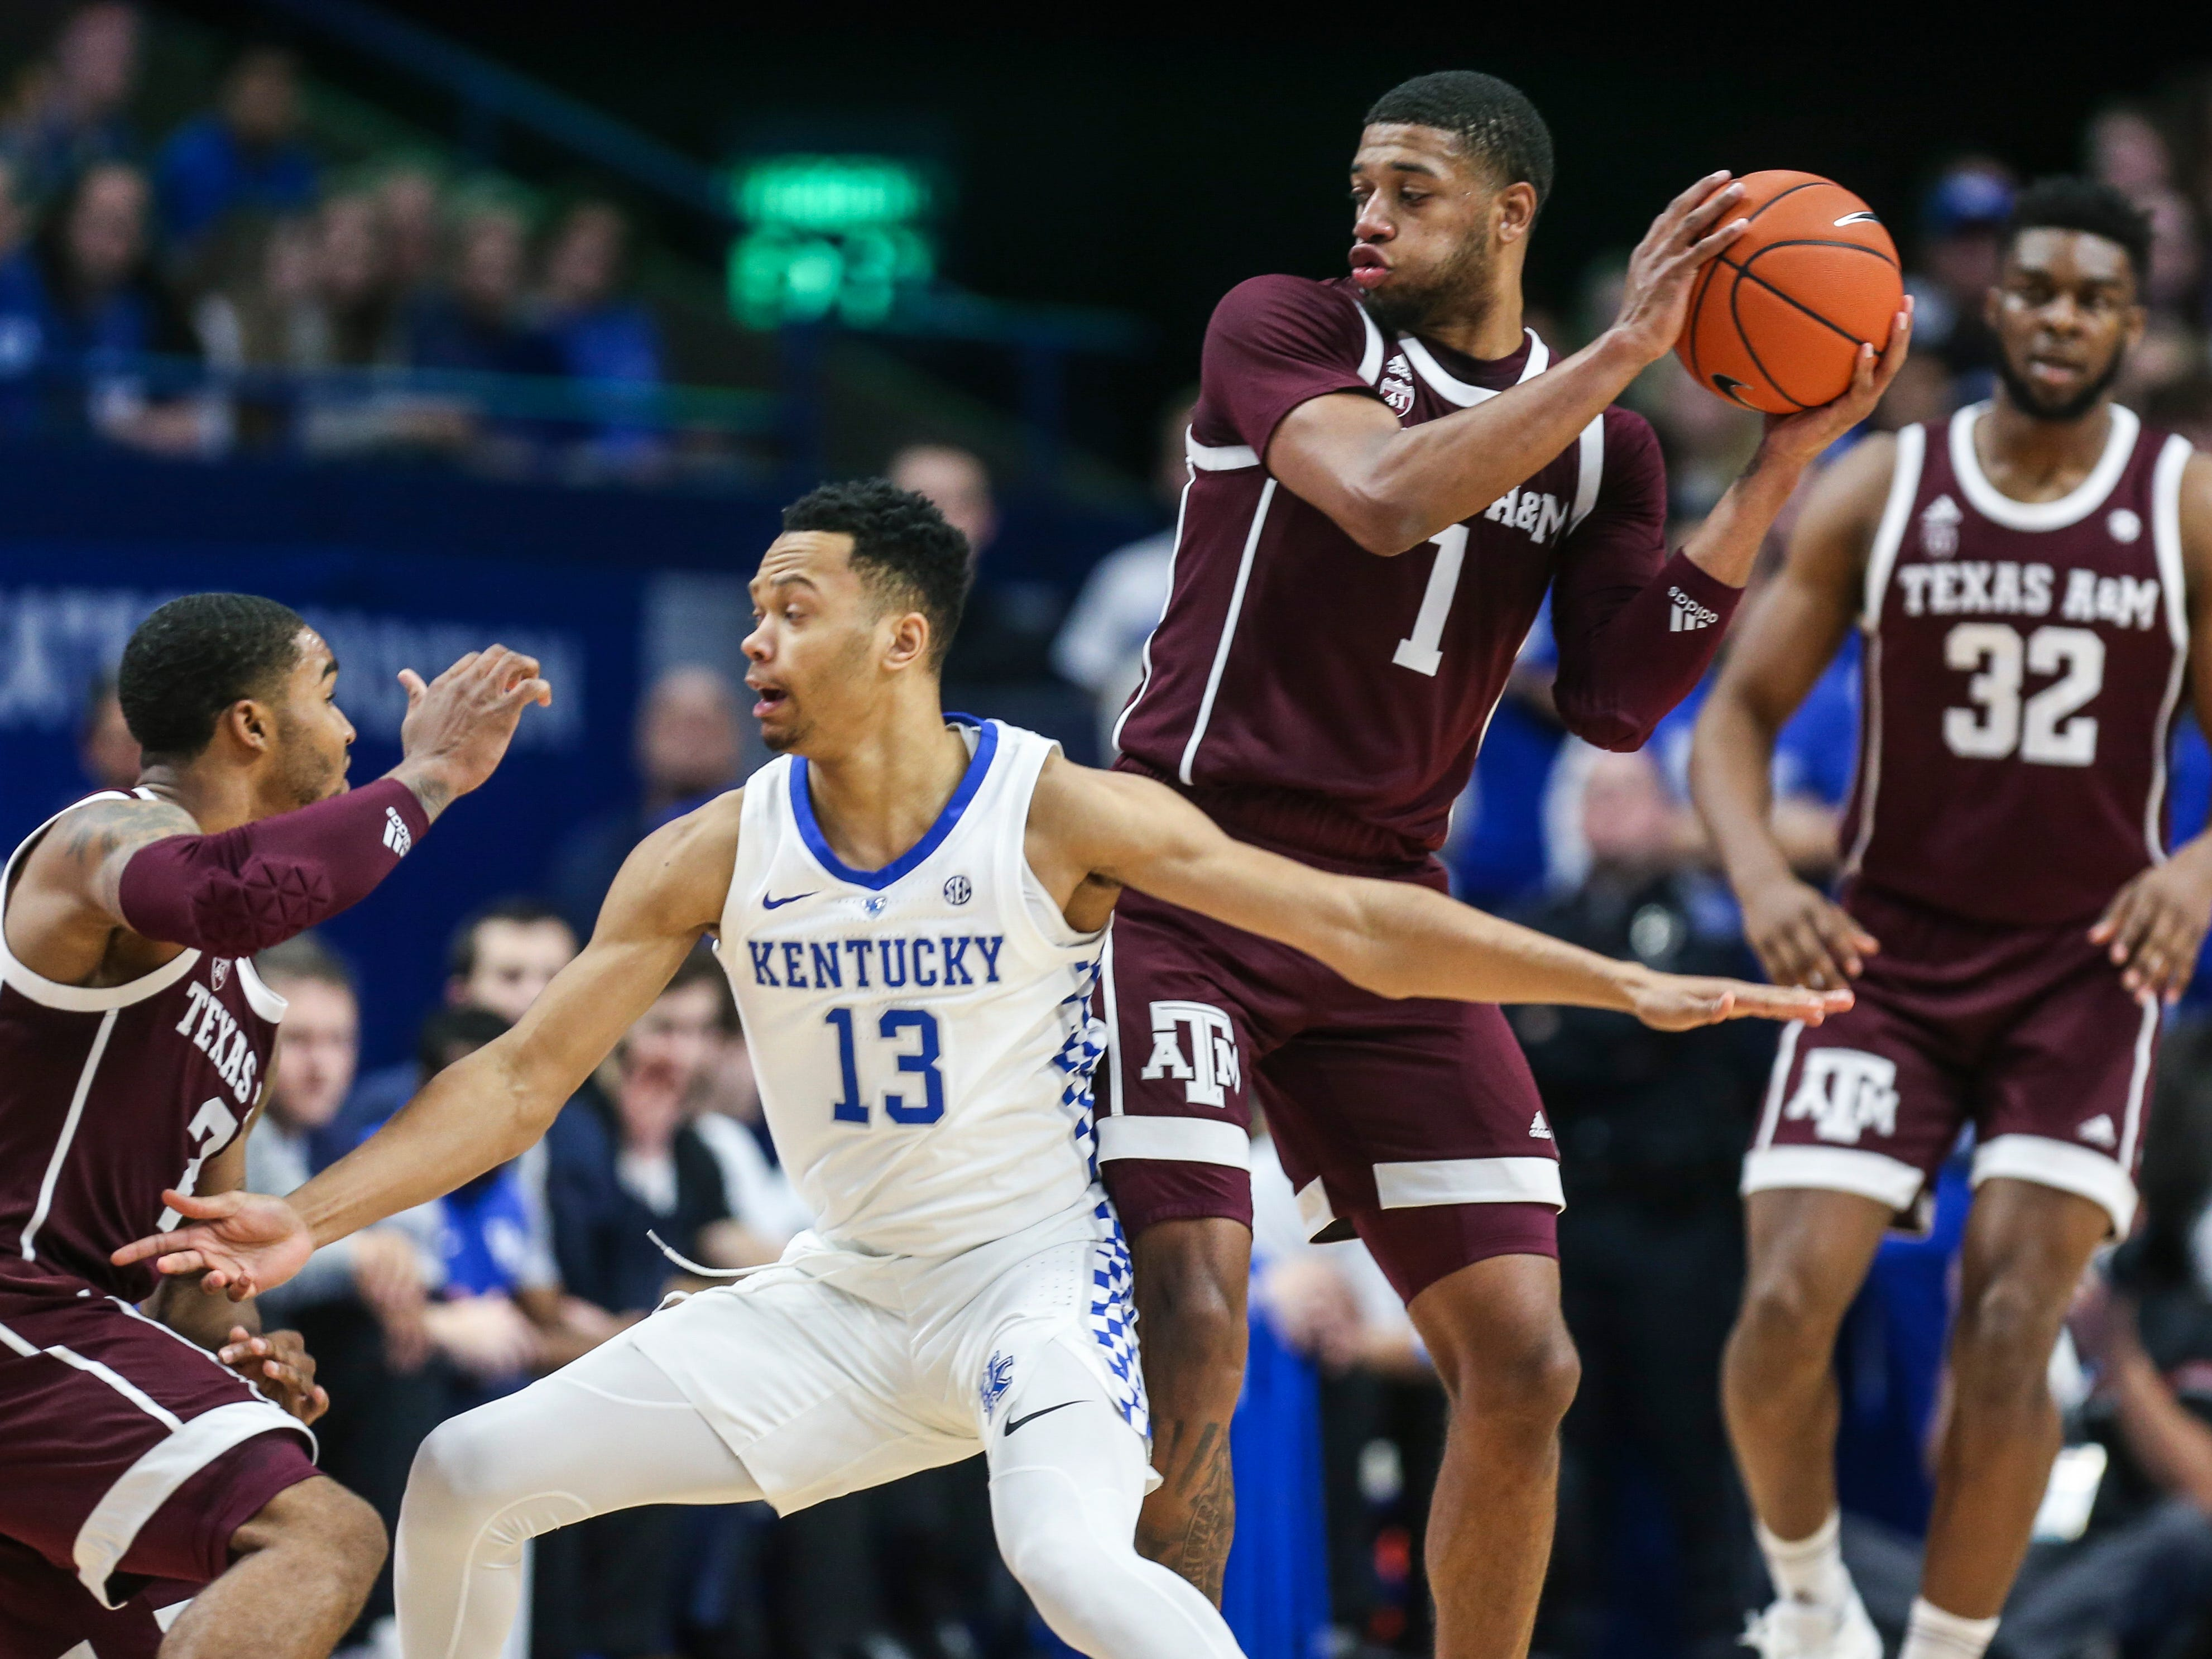 Kentucky's Jemarl Baker had just four points but was lauded by coach John Calipari after the Wildcats' win over Texas A&M.  January 8, 2019